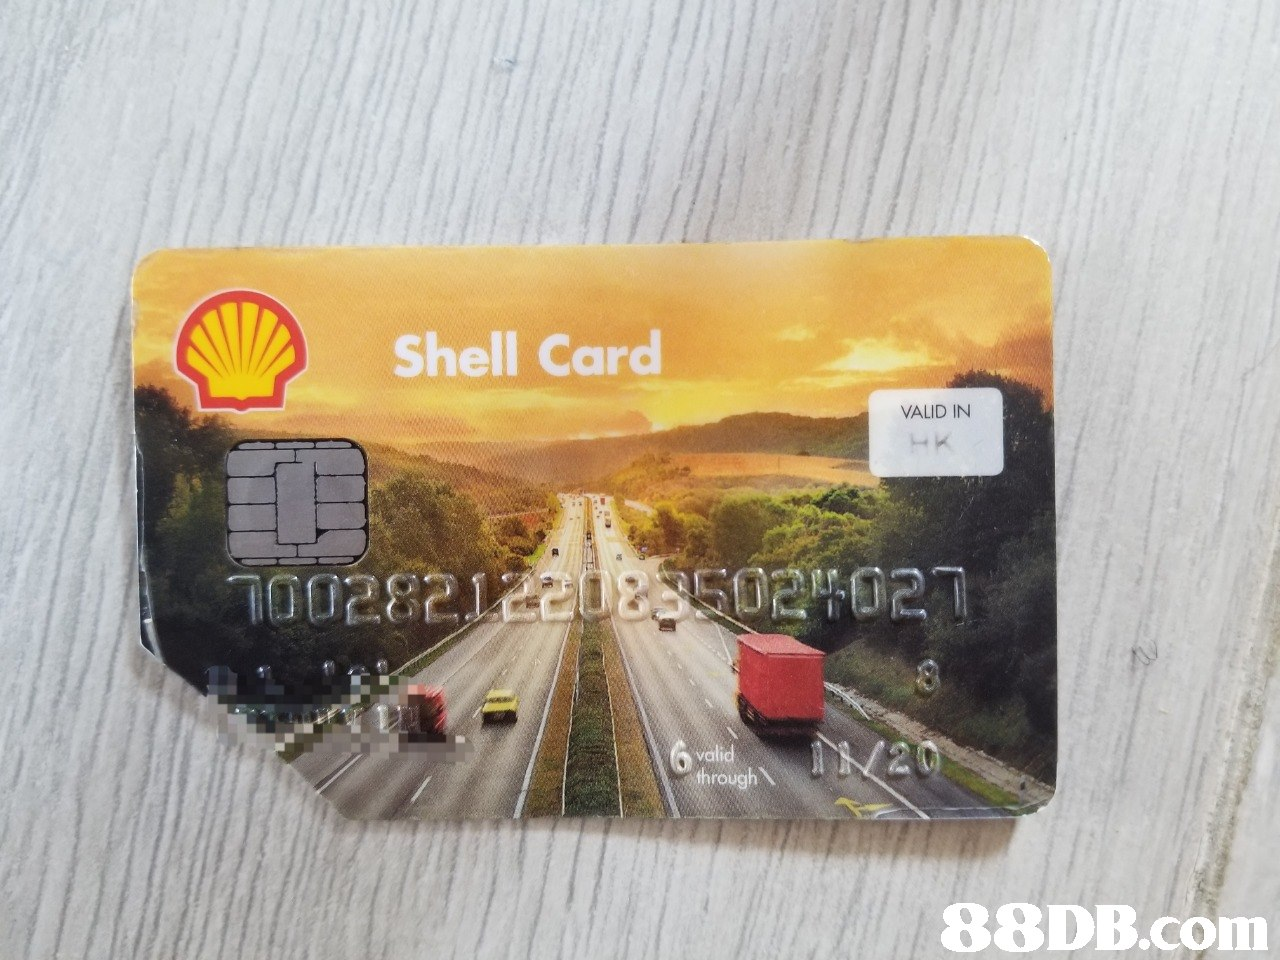 Shell Card VALID IN 7002821 valid through\ 88DB.com